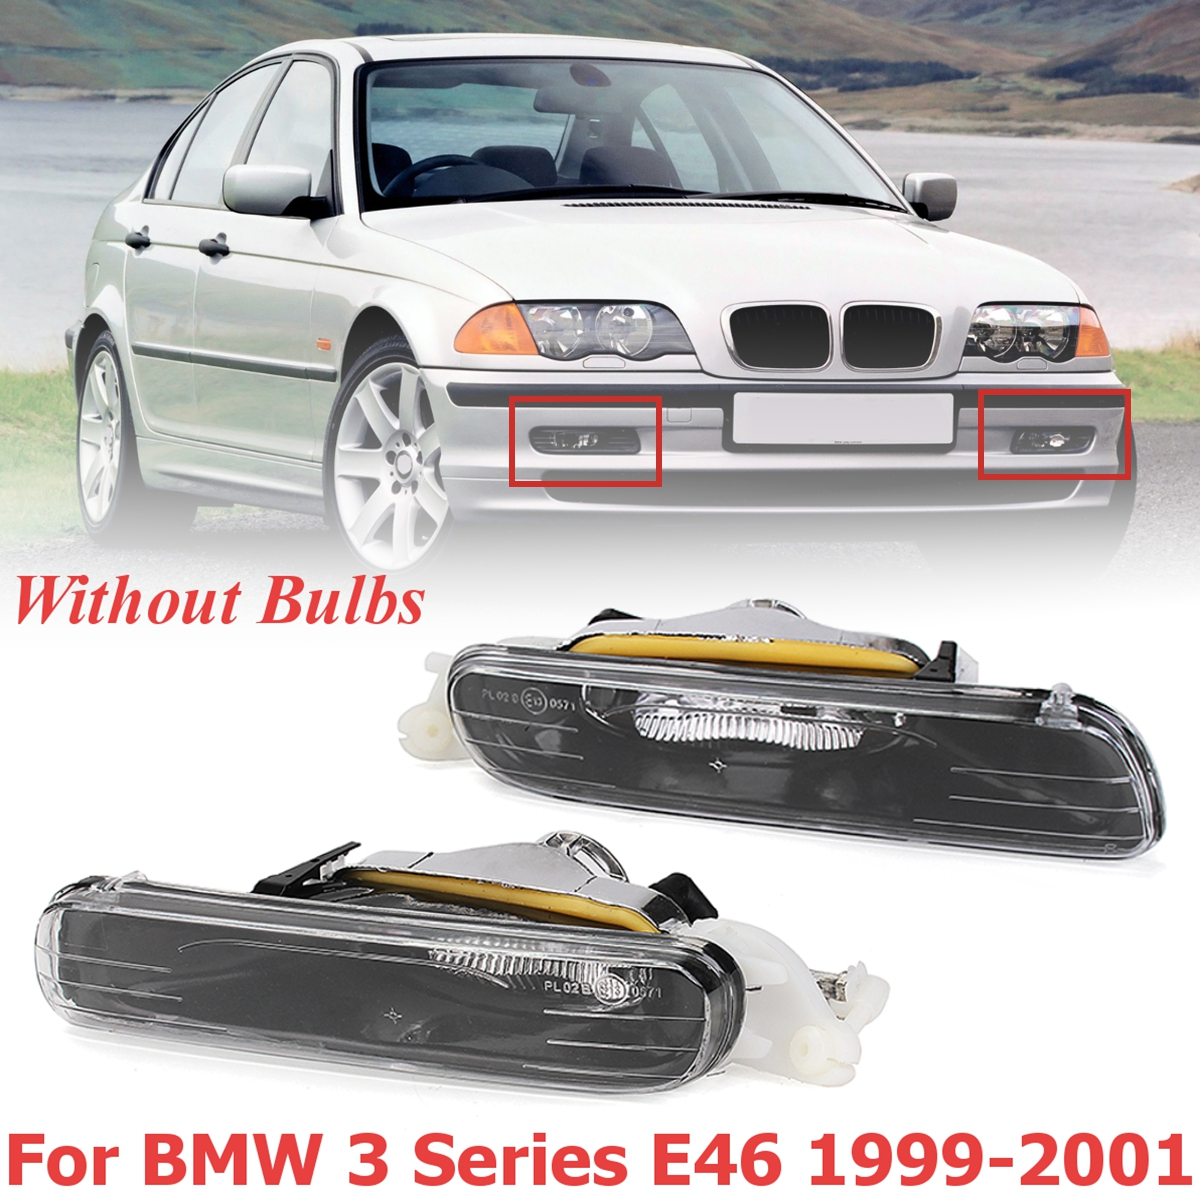 for BMW 3 Series E46 1999 2000 2001 1 Pair Front Bumper Halogen Fog Lights Lamps Without Bulb Car Styling Replacment nicecnc one pair car bumper fog lights front lamps left